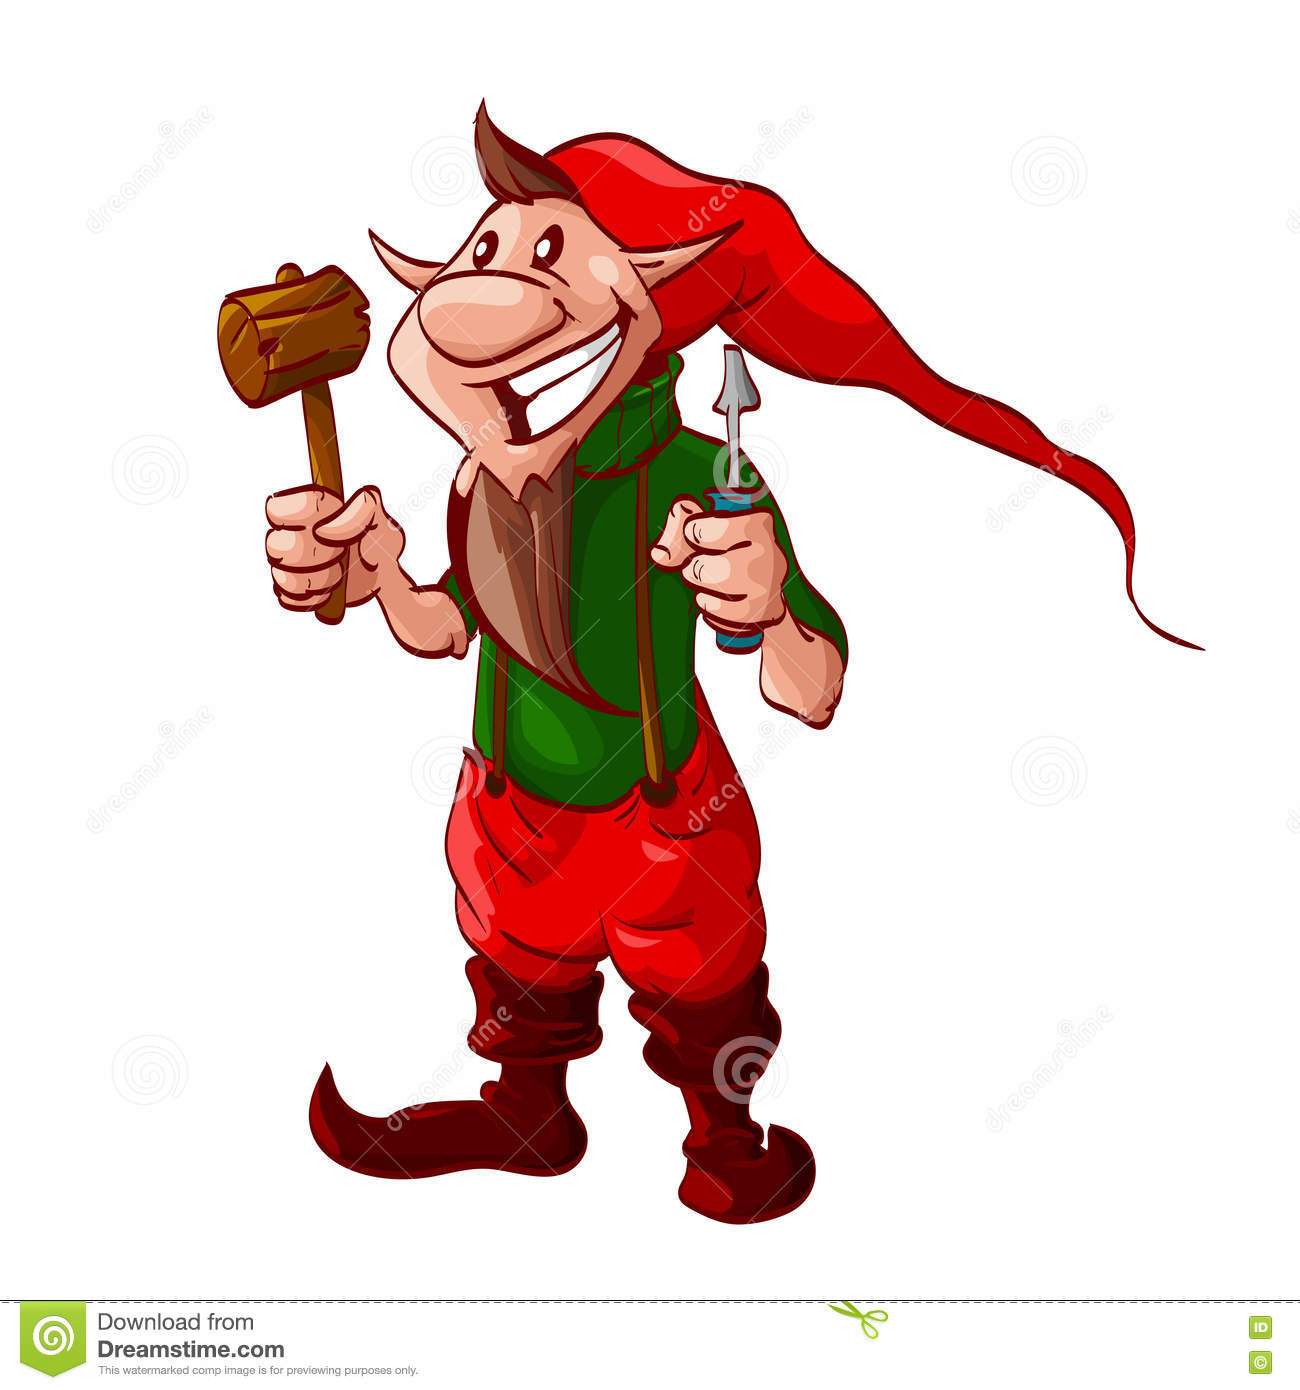 Smiling Cartoon Christmas Elf Or A Dwarf Stock Vector - Image ...